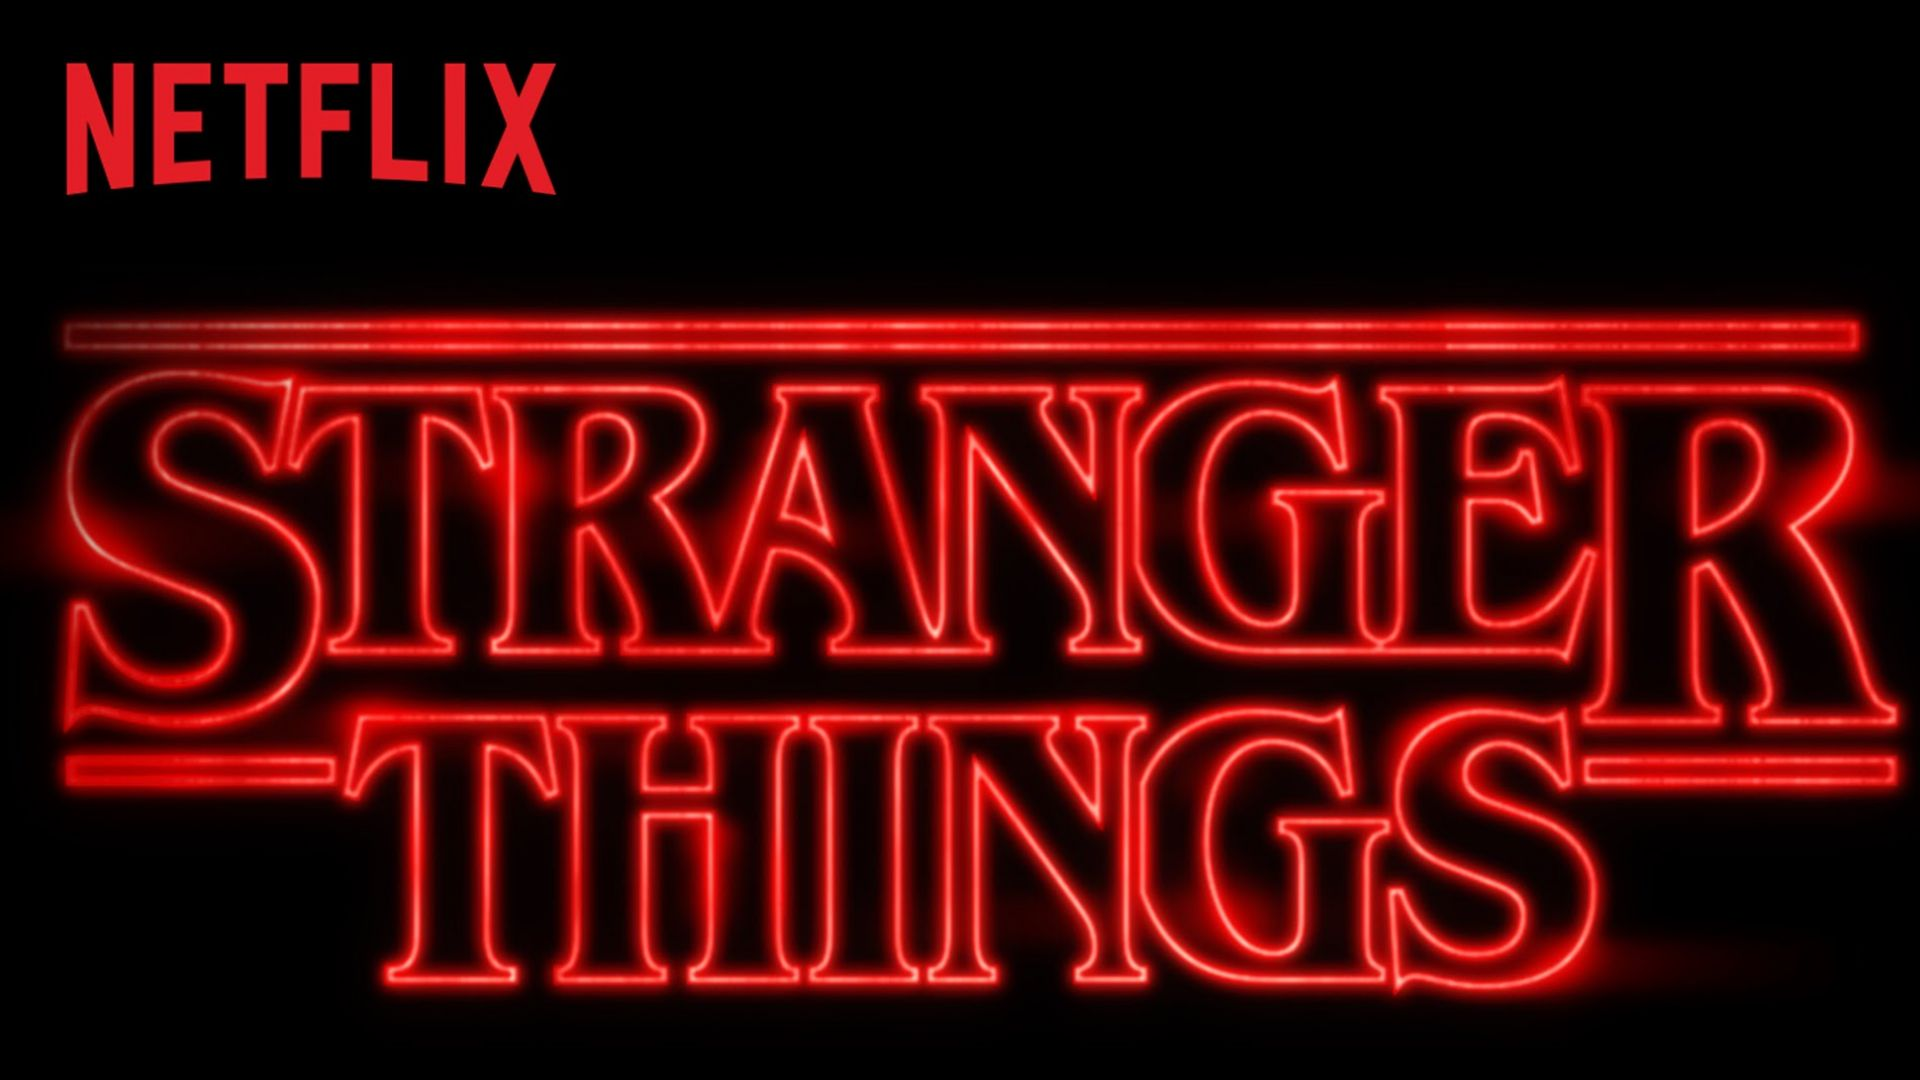 Netflix teases Stranger Things season 2 (coming in 2017)